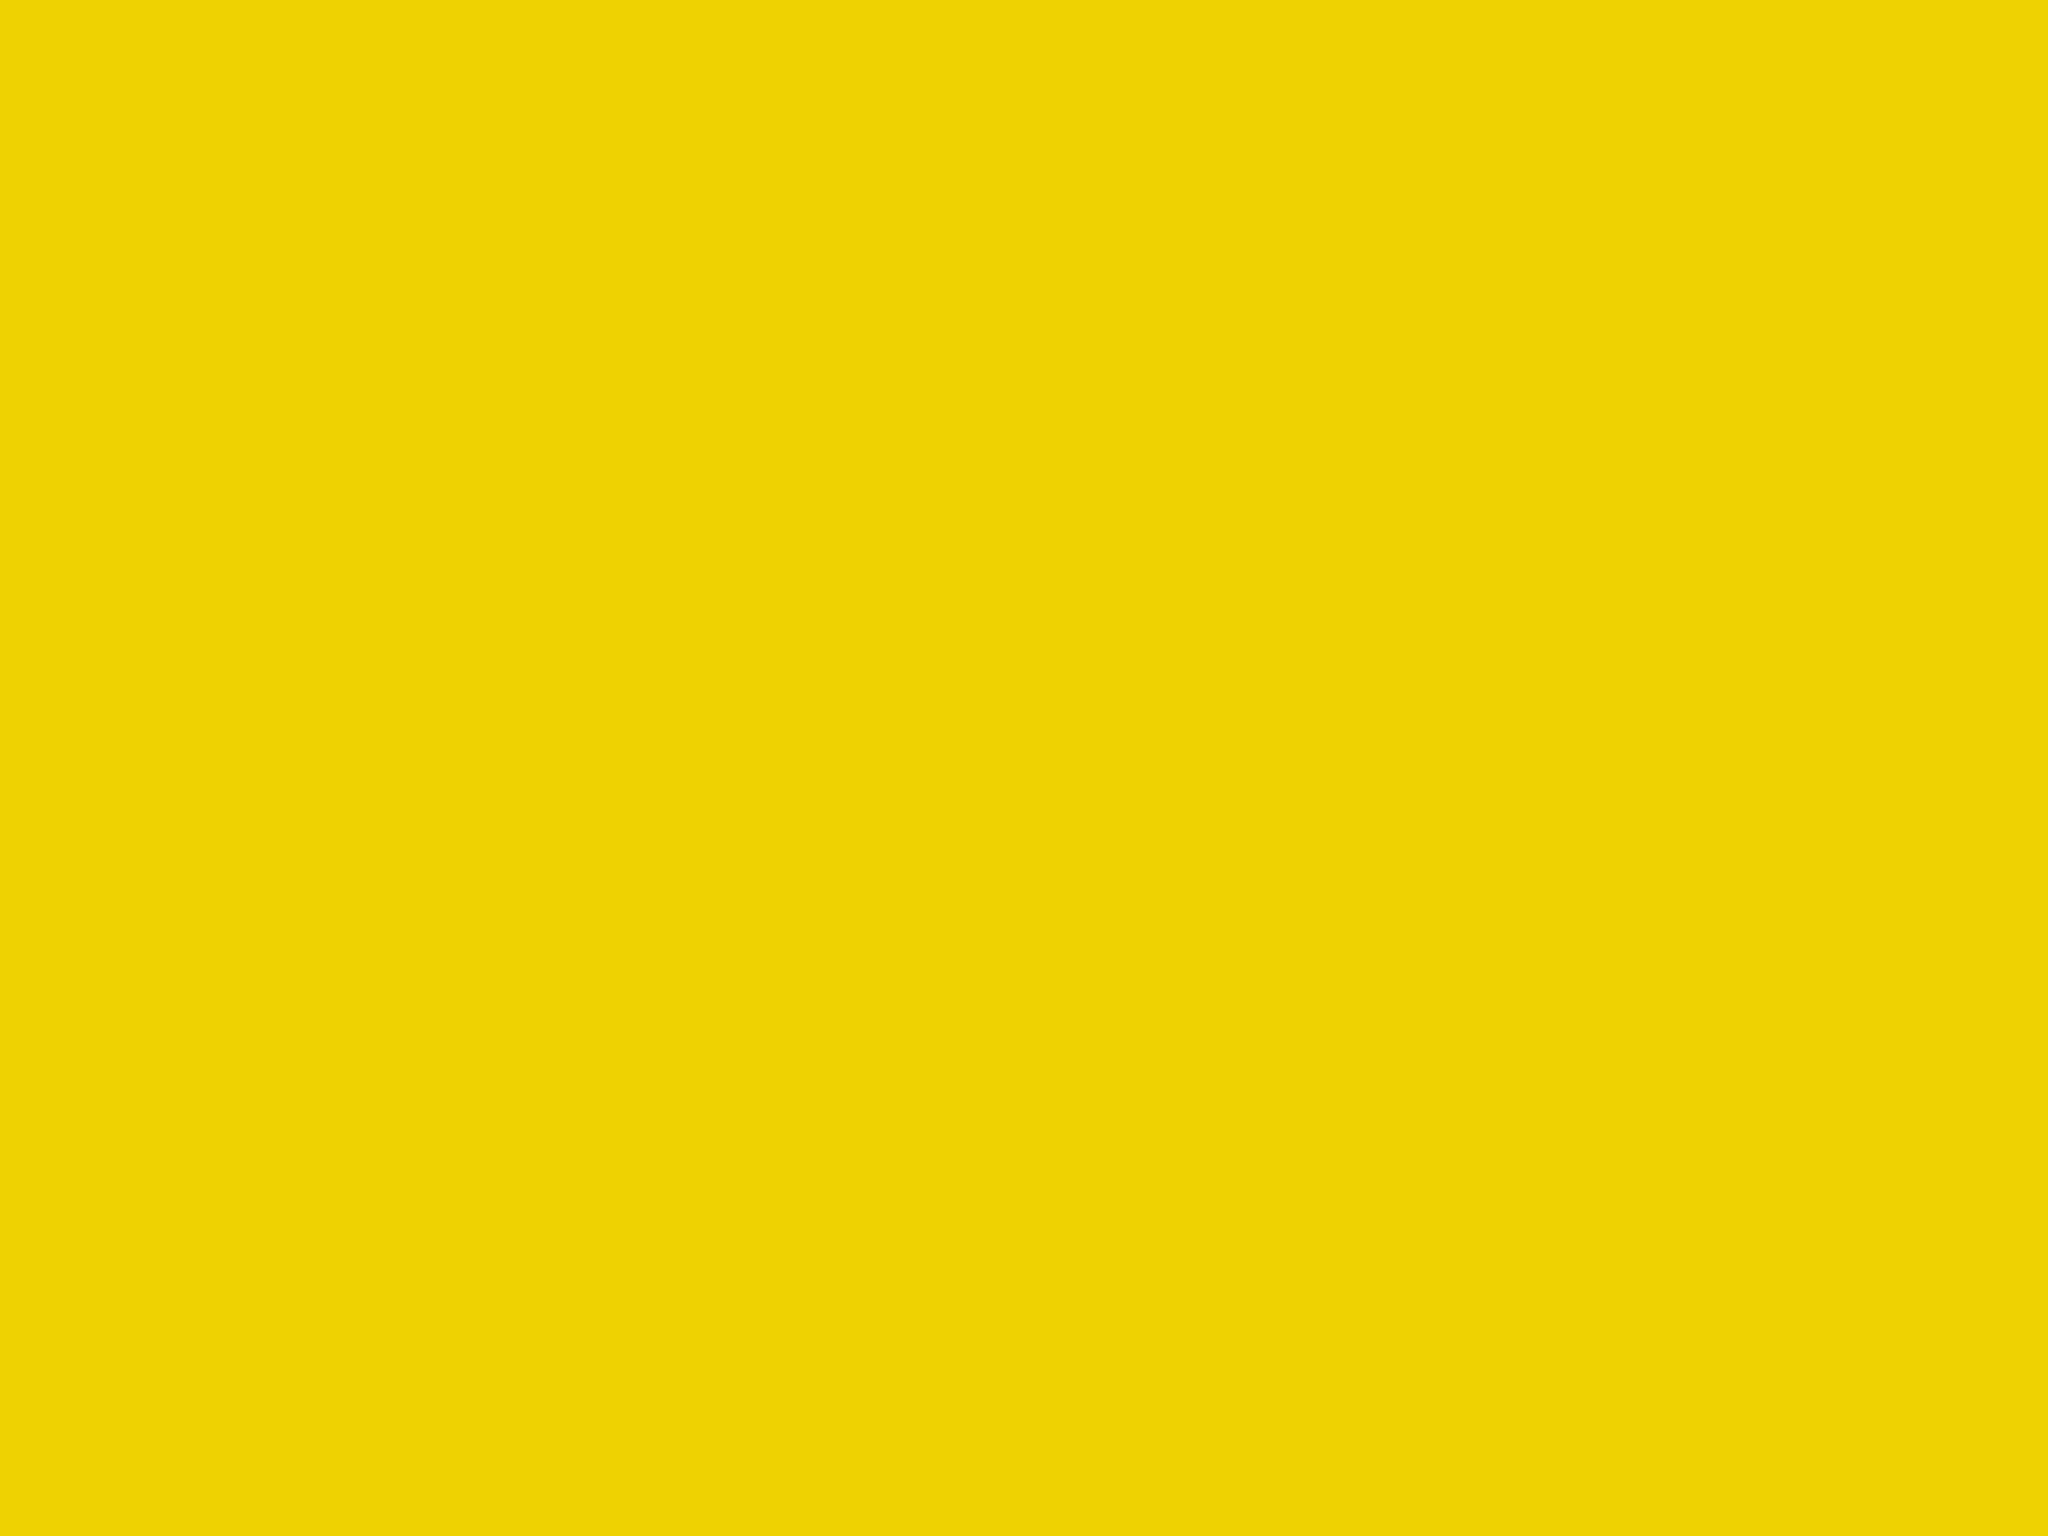 2048x1536 Safety Yellow Solid Color Background